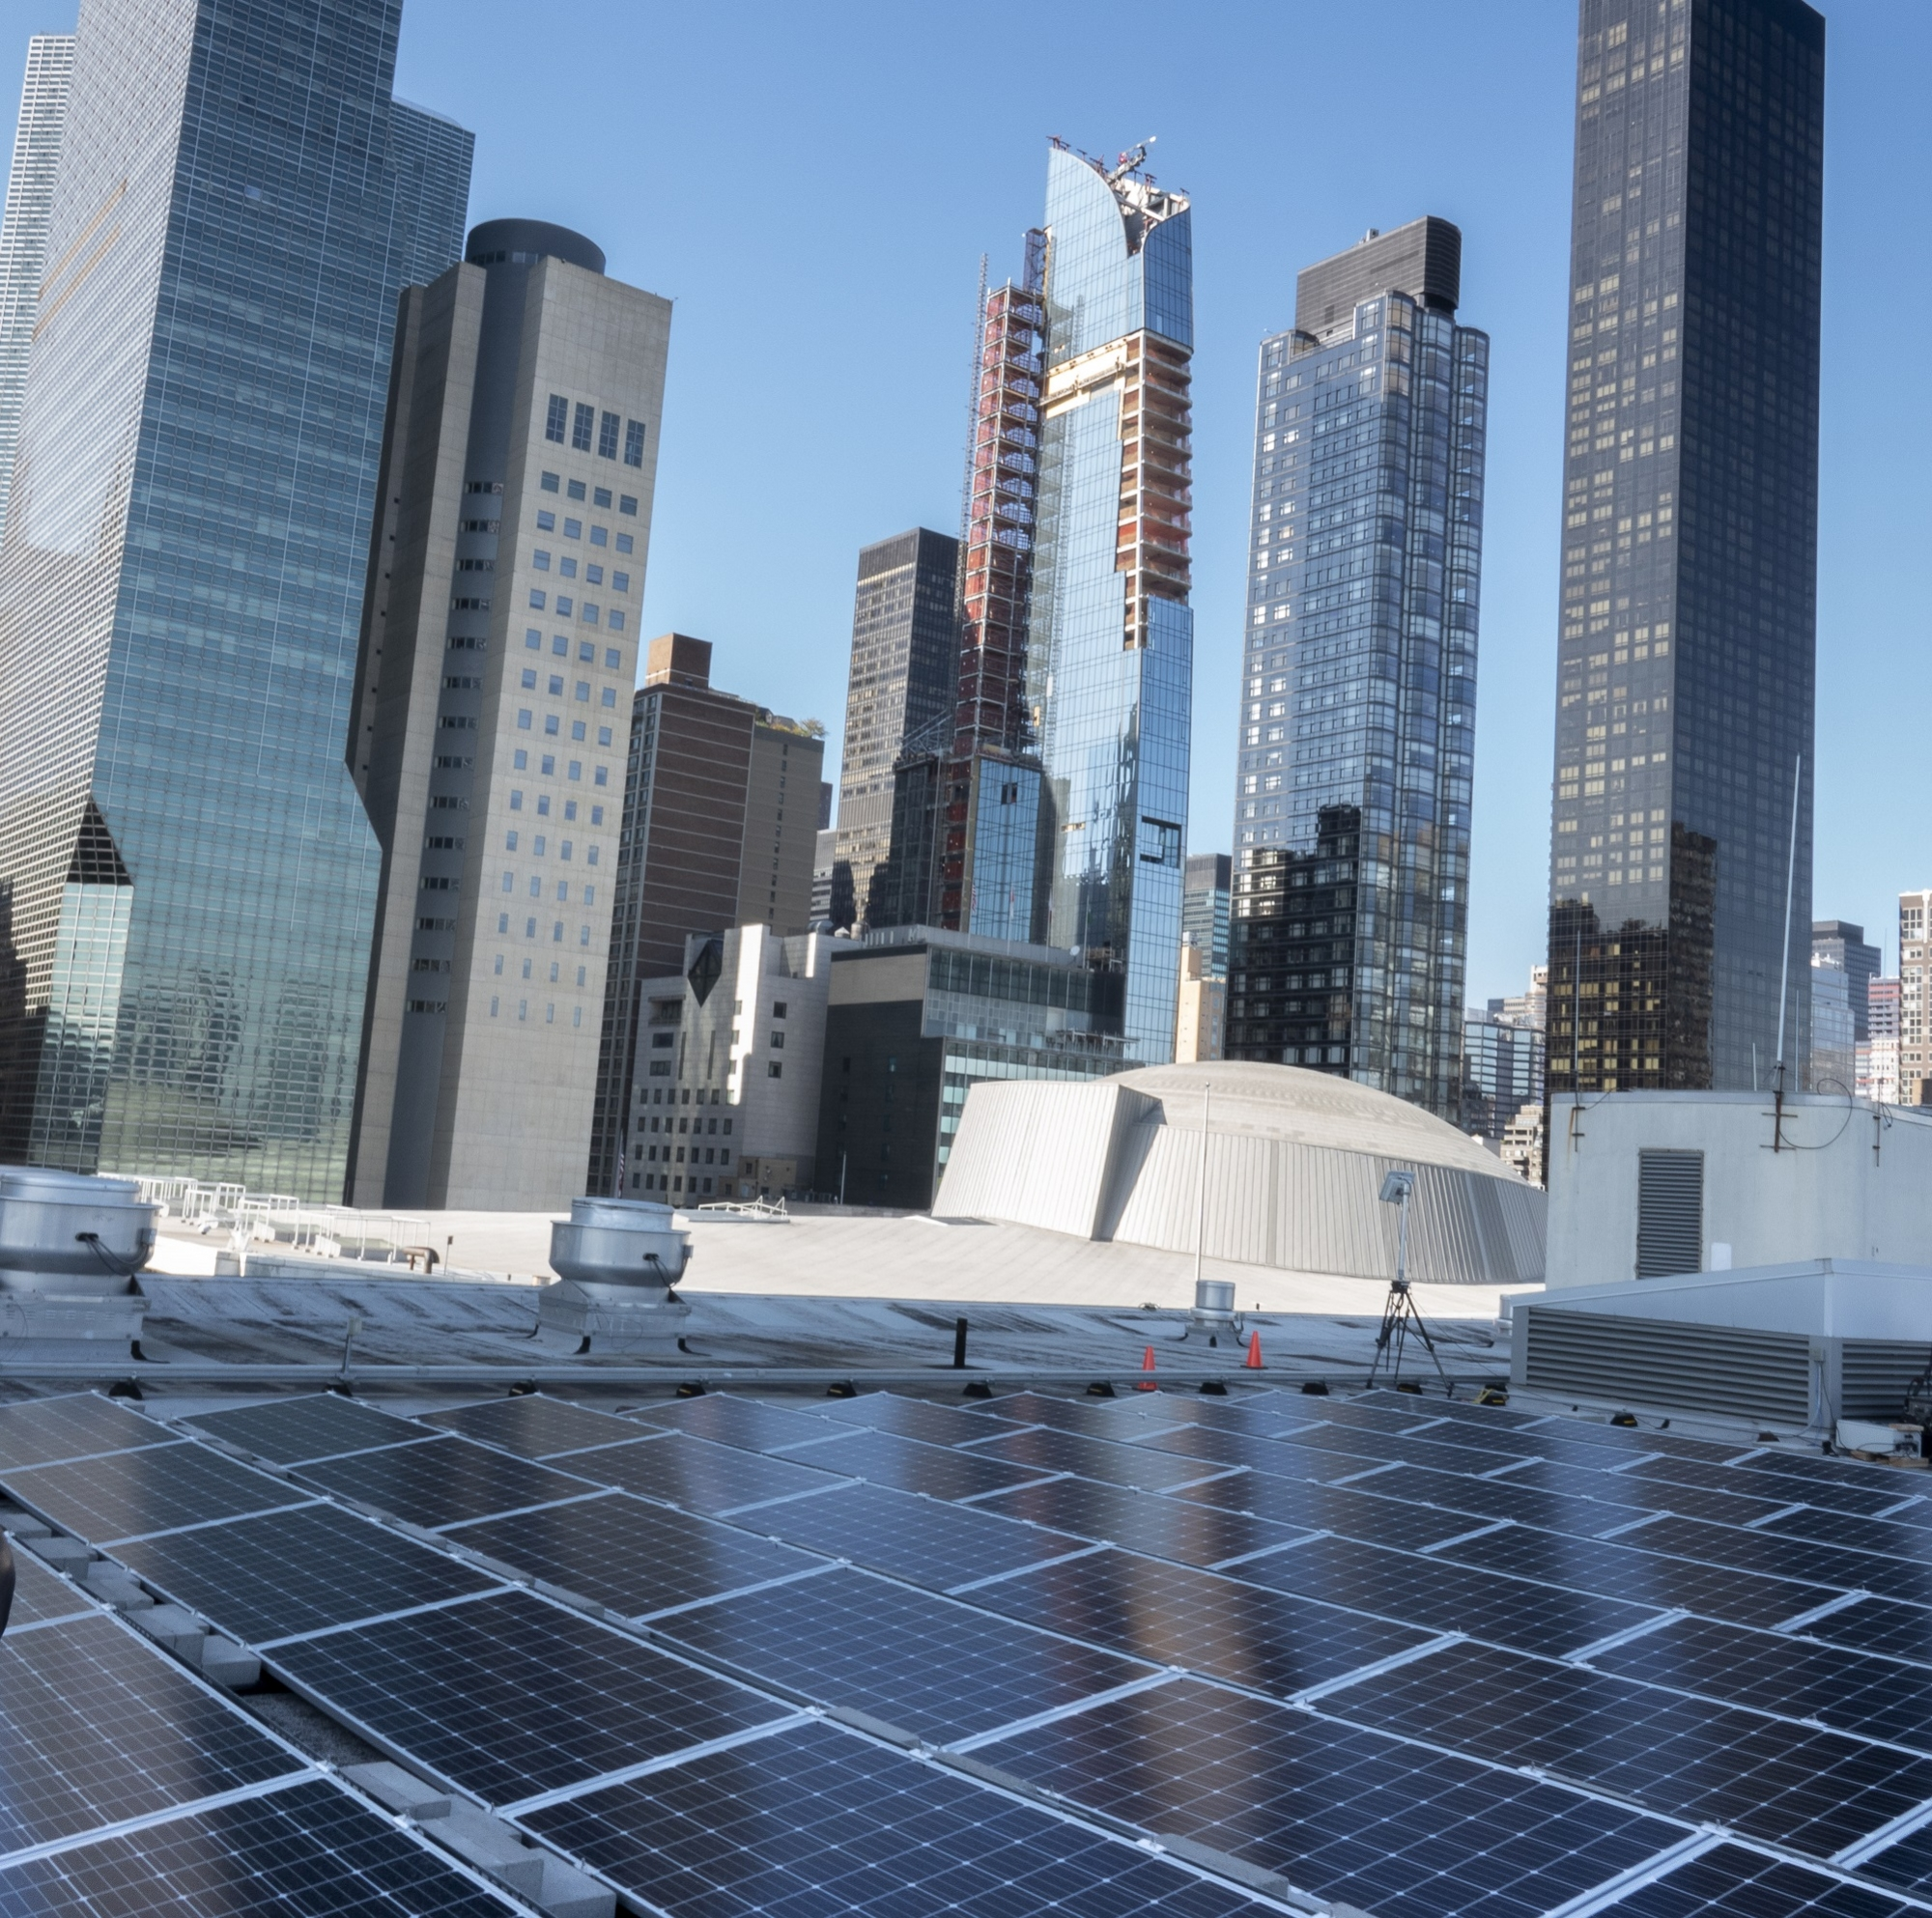 A view of the solar panels, a gift from India, installed on the roof of the United Nations.